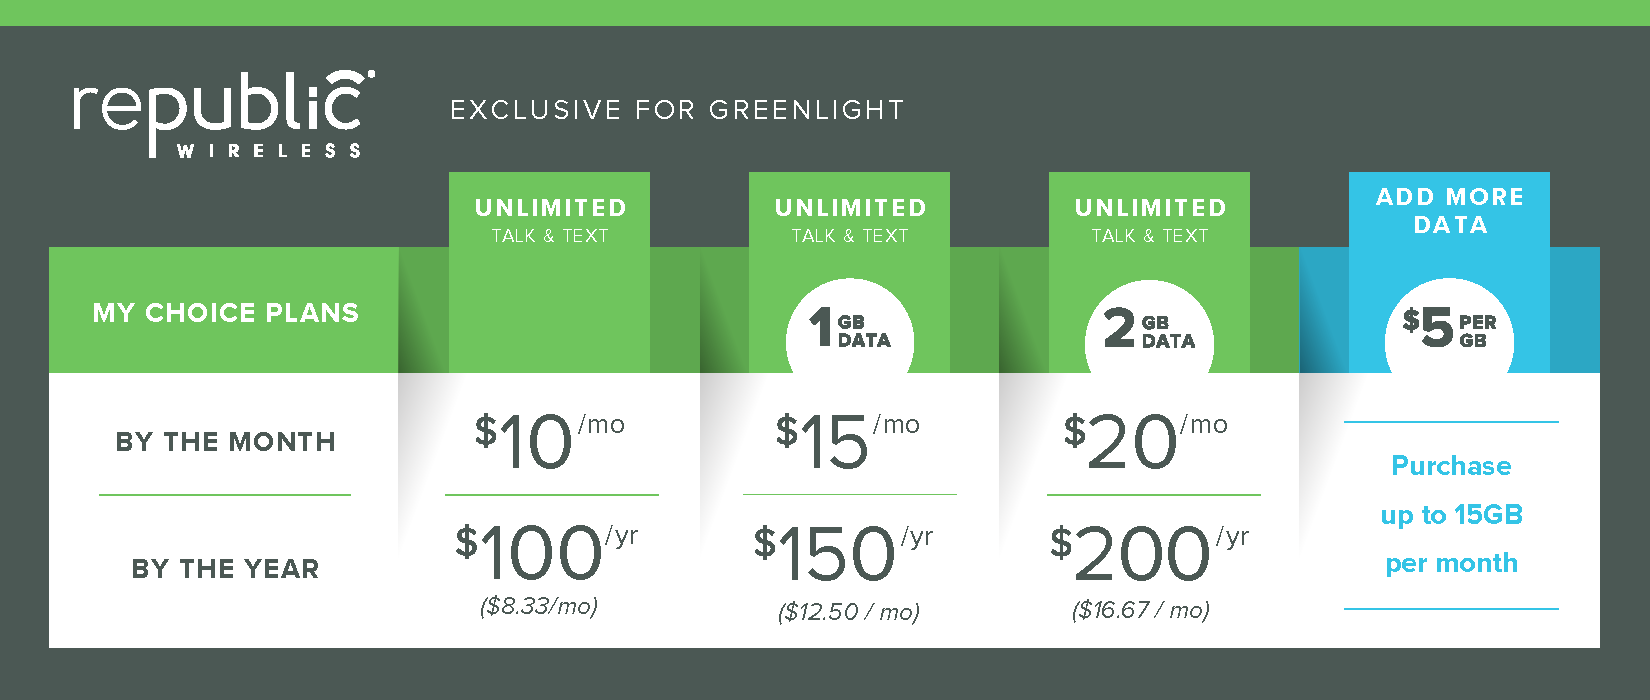 Republic Greenlight Plans